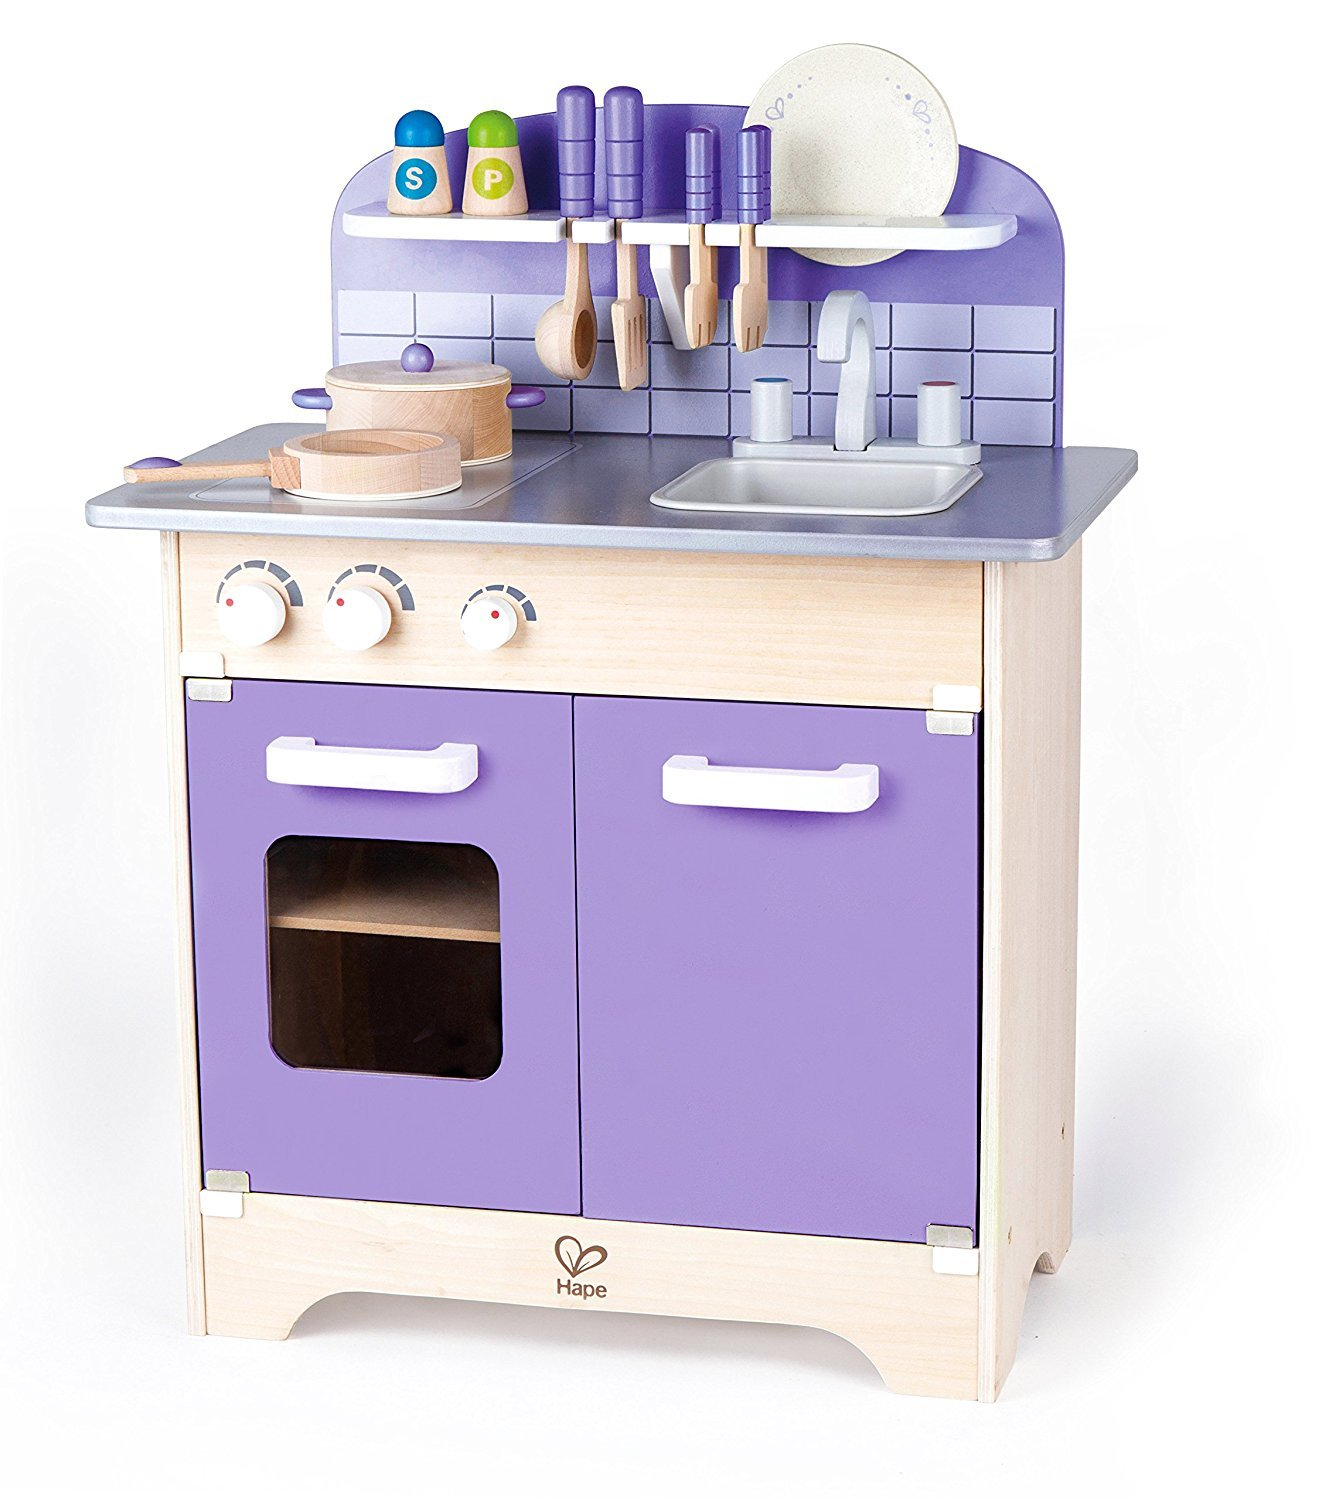 One of the best wooden toy kitchens is the Hape Playfully Delicious Wooden Kitchen with 13 Accessories